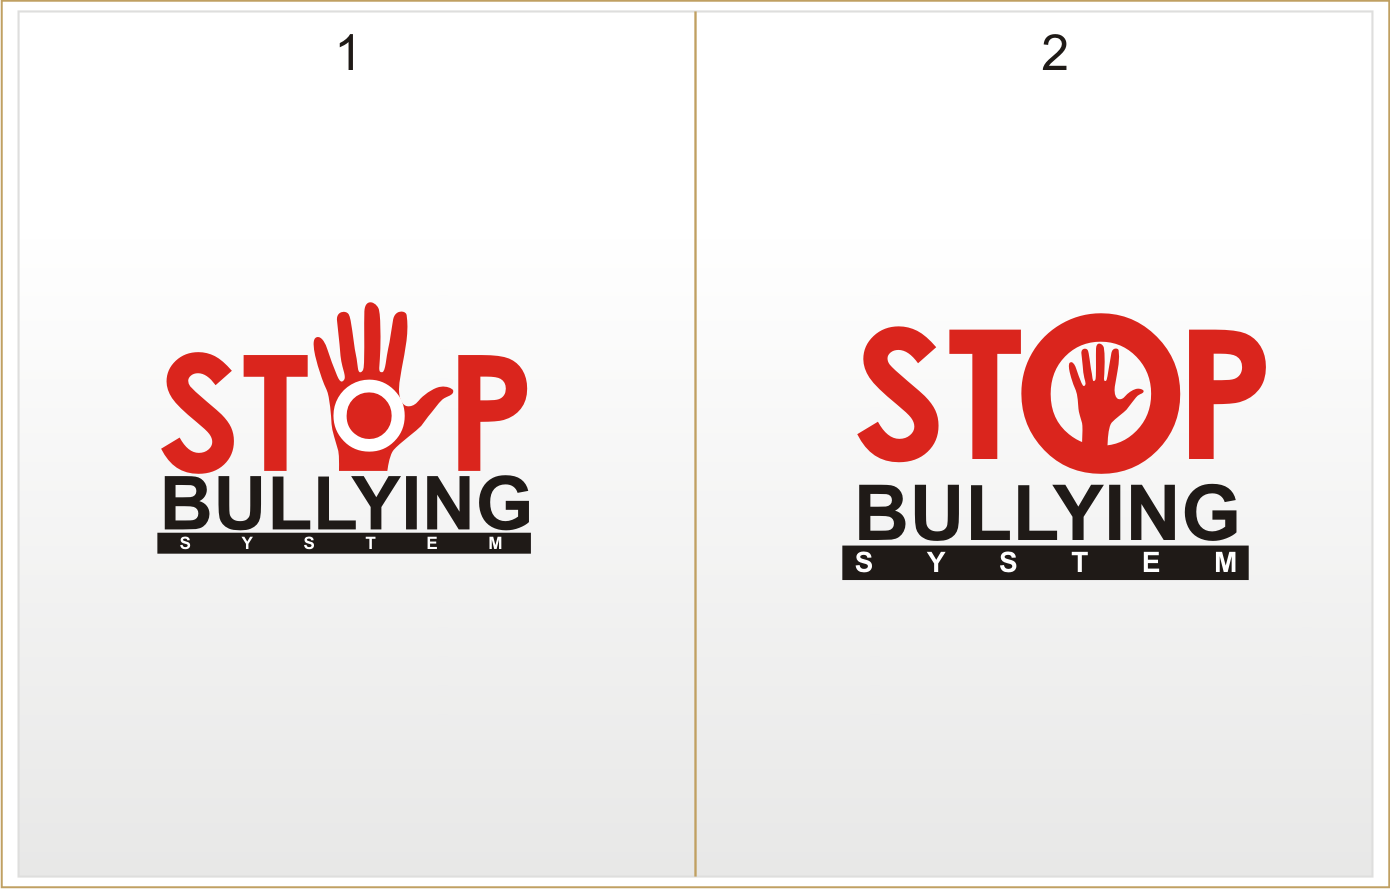 Help Stop Bullying System with a new logo